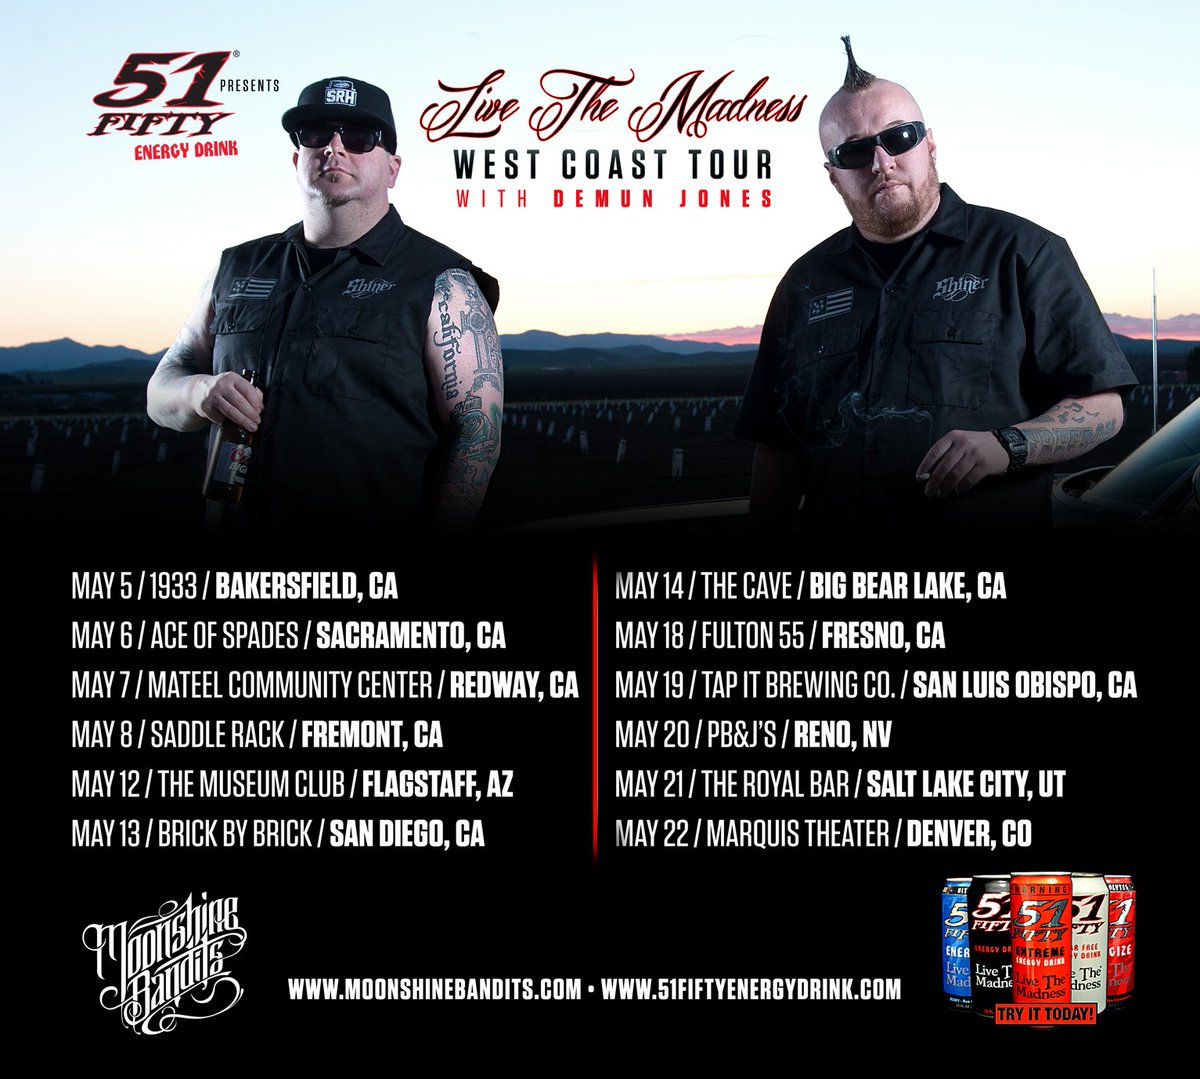 Our West Coast Tour is powered by our friends at @51FiftyEnergy  kicks off this May! #51FIFTYENERGY https://t.co/3pWW4qRQLf